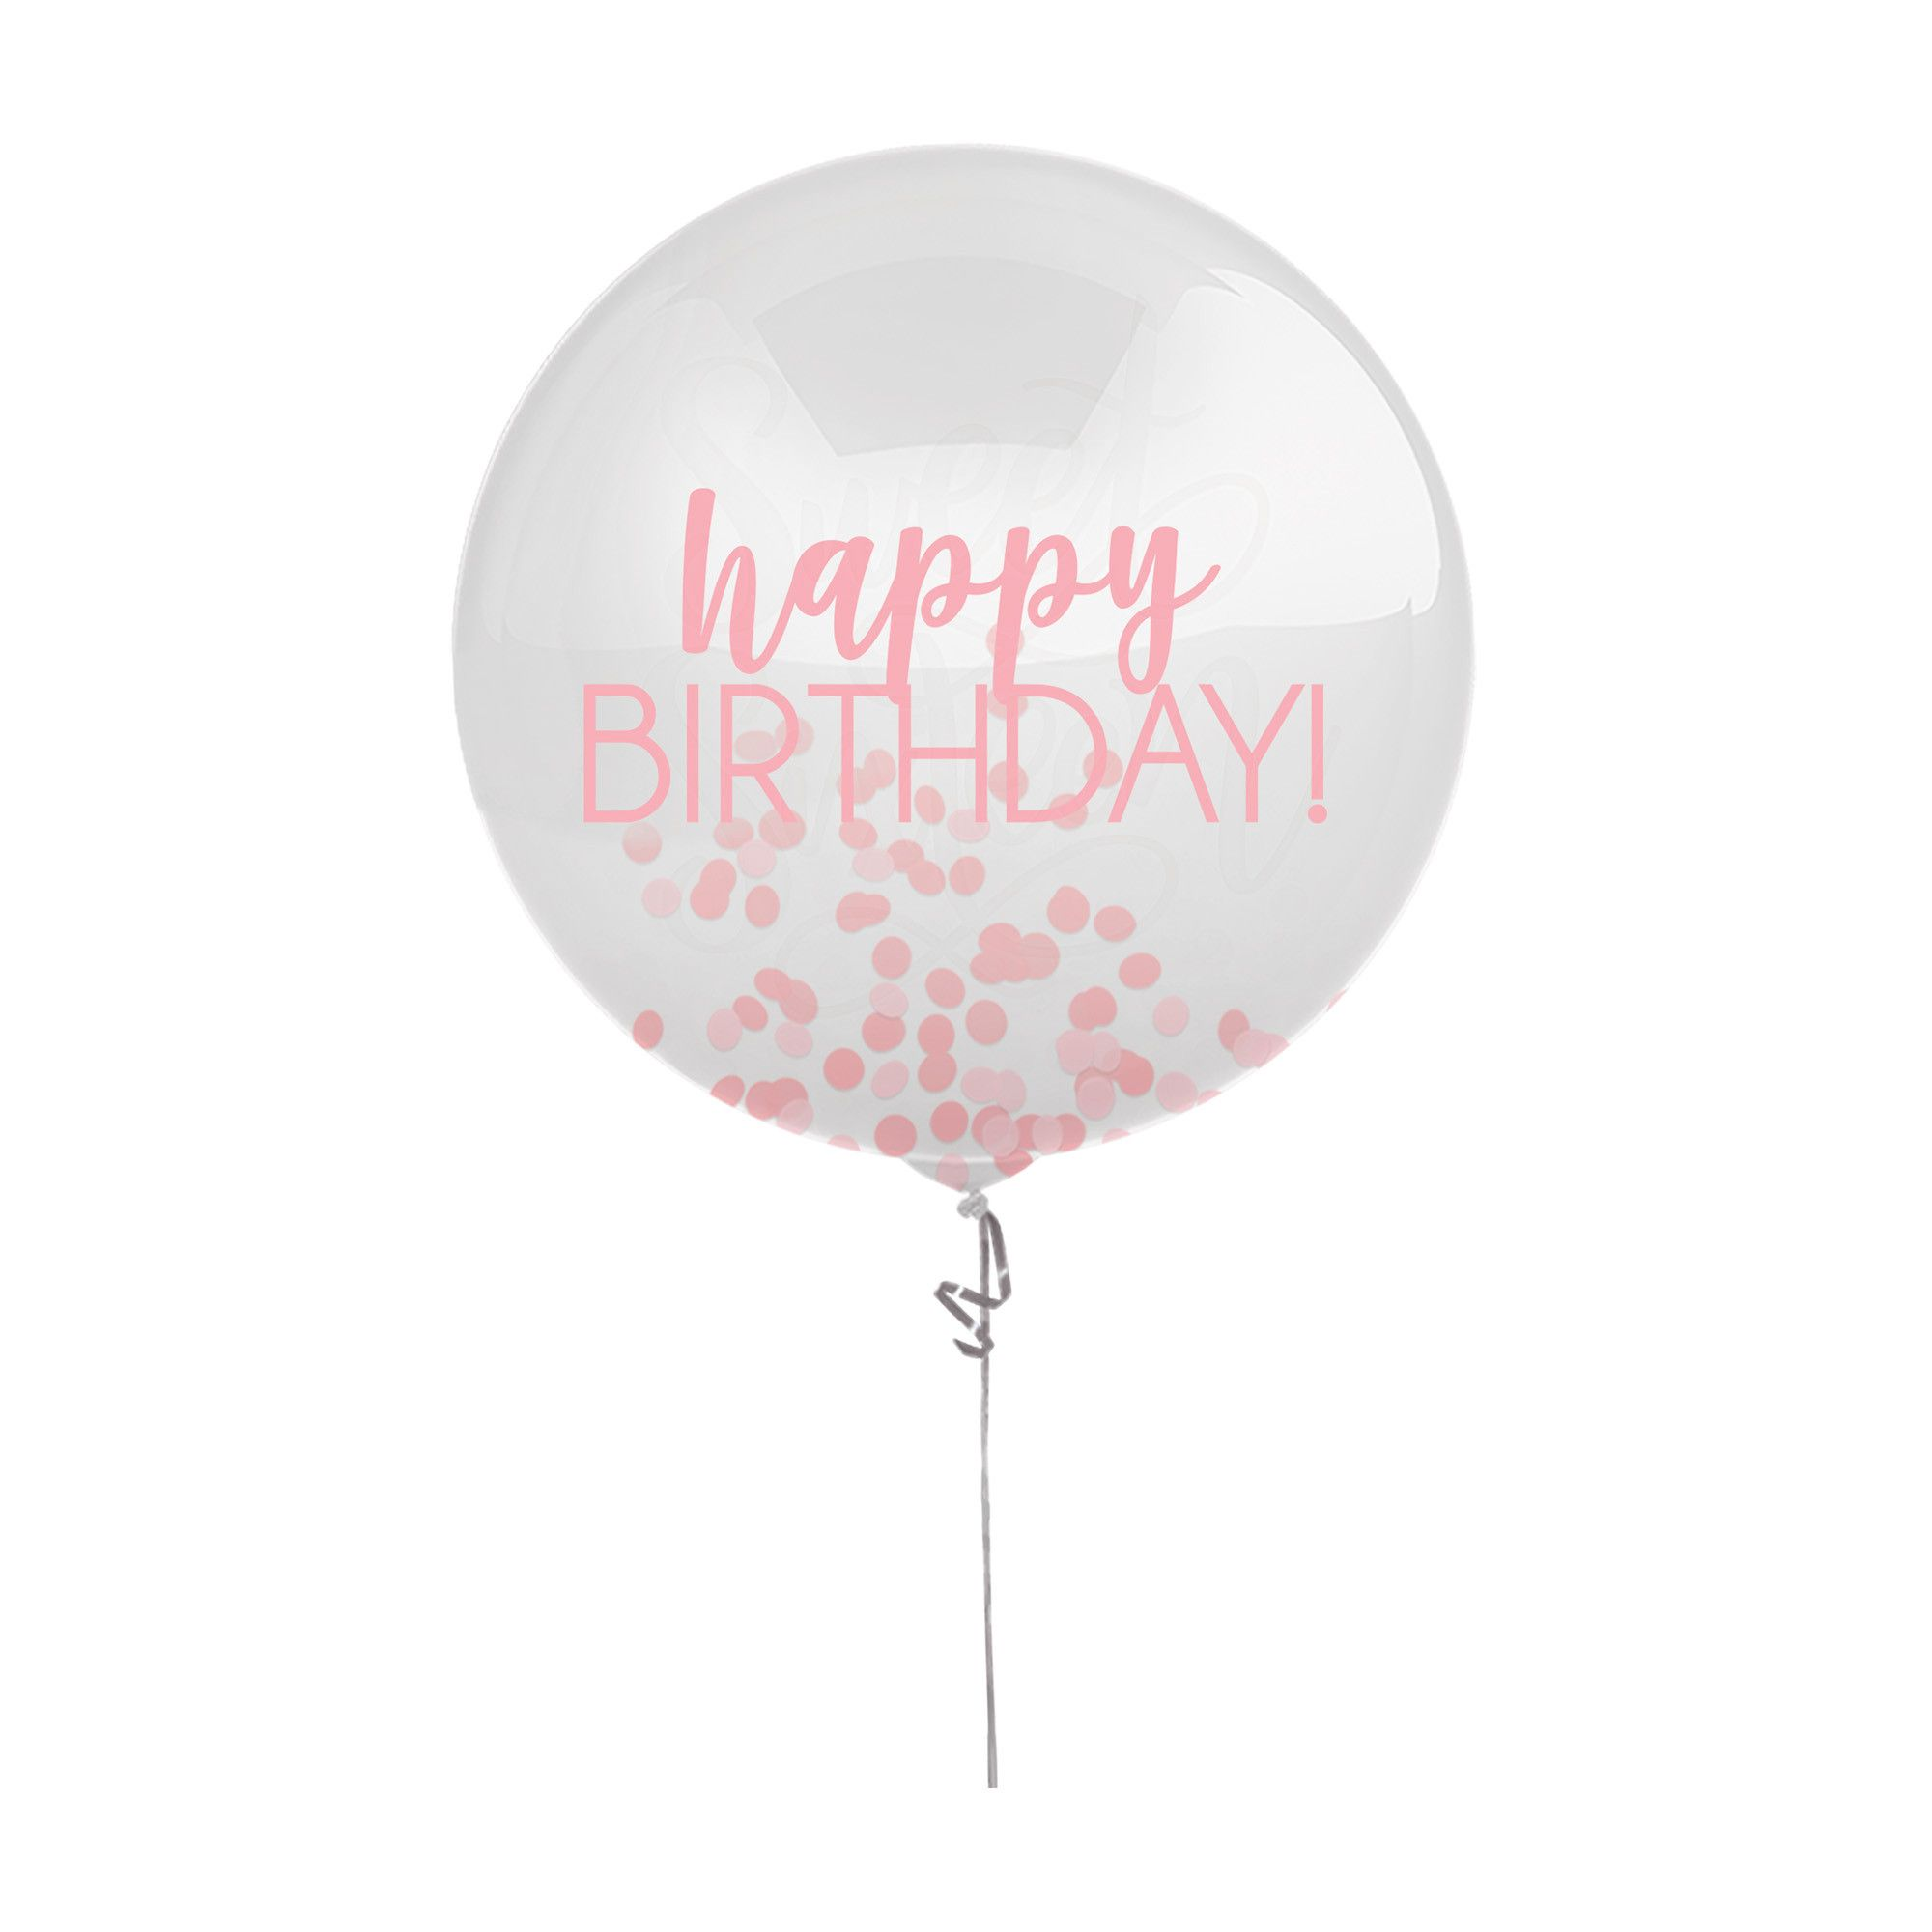 Bday Access Pinks Latex Balloon w/Confetti